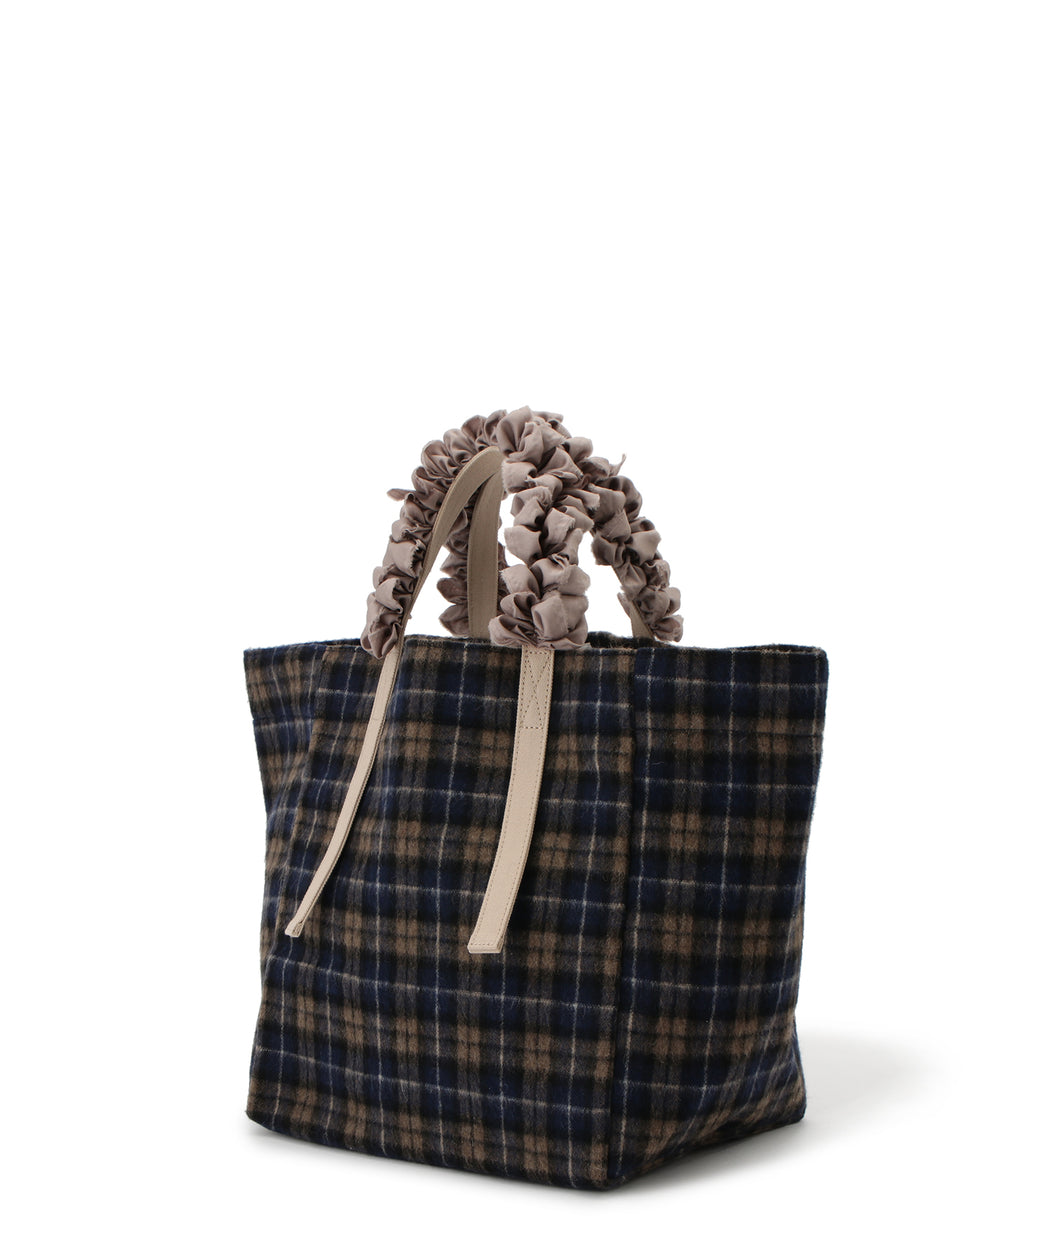 Grape handle tote (Tartan plaid)